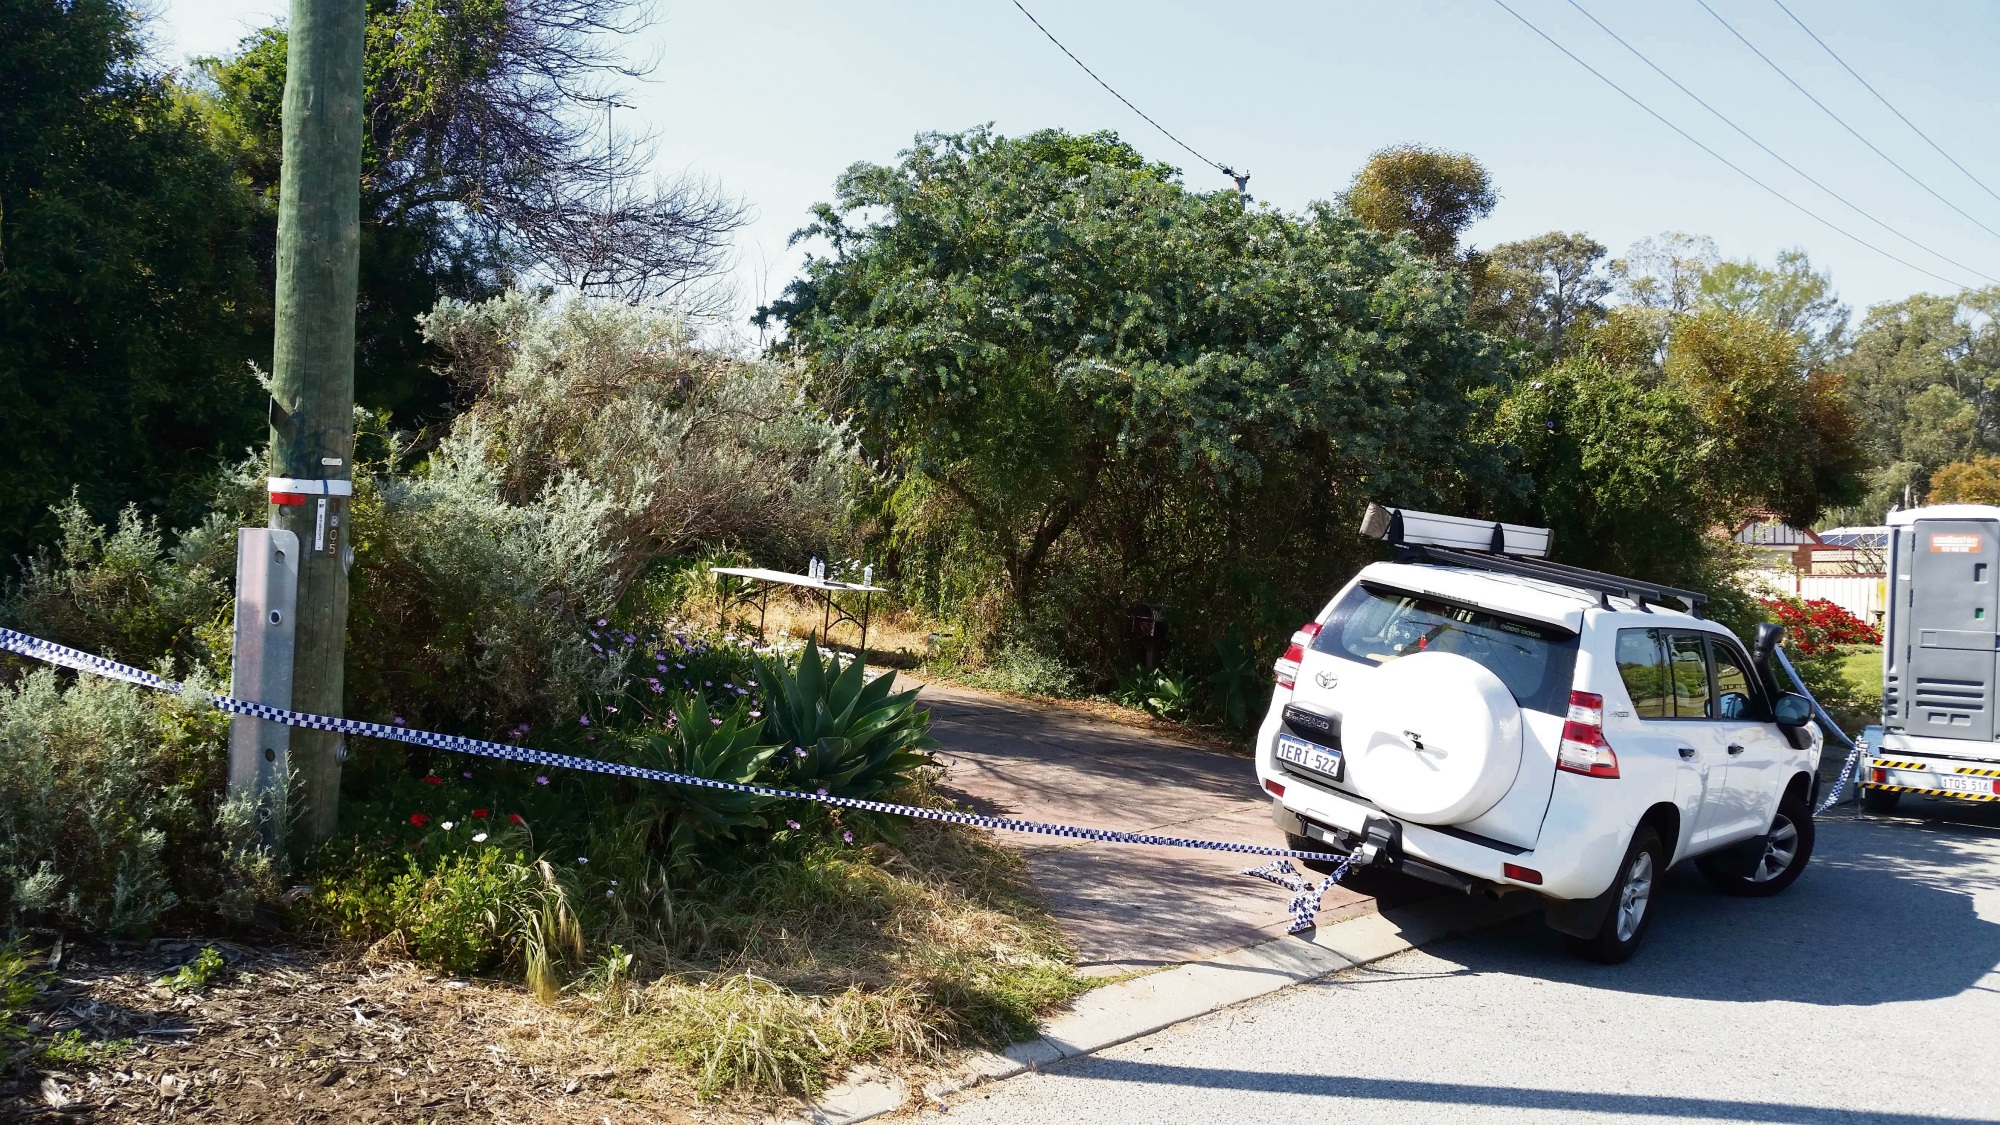 The crime scene on Cromer Gardens, Parmelia